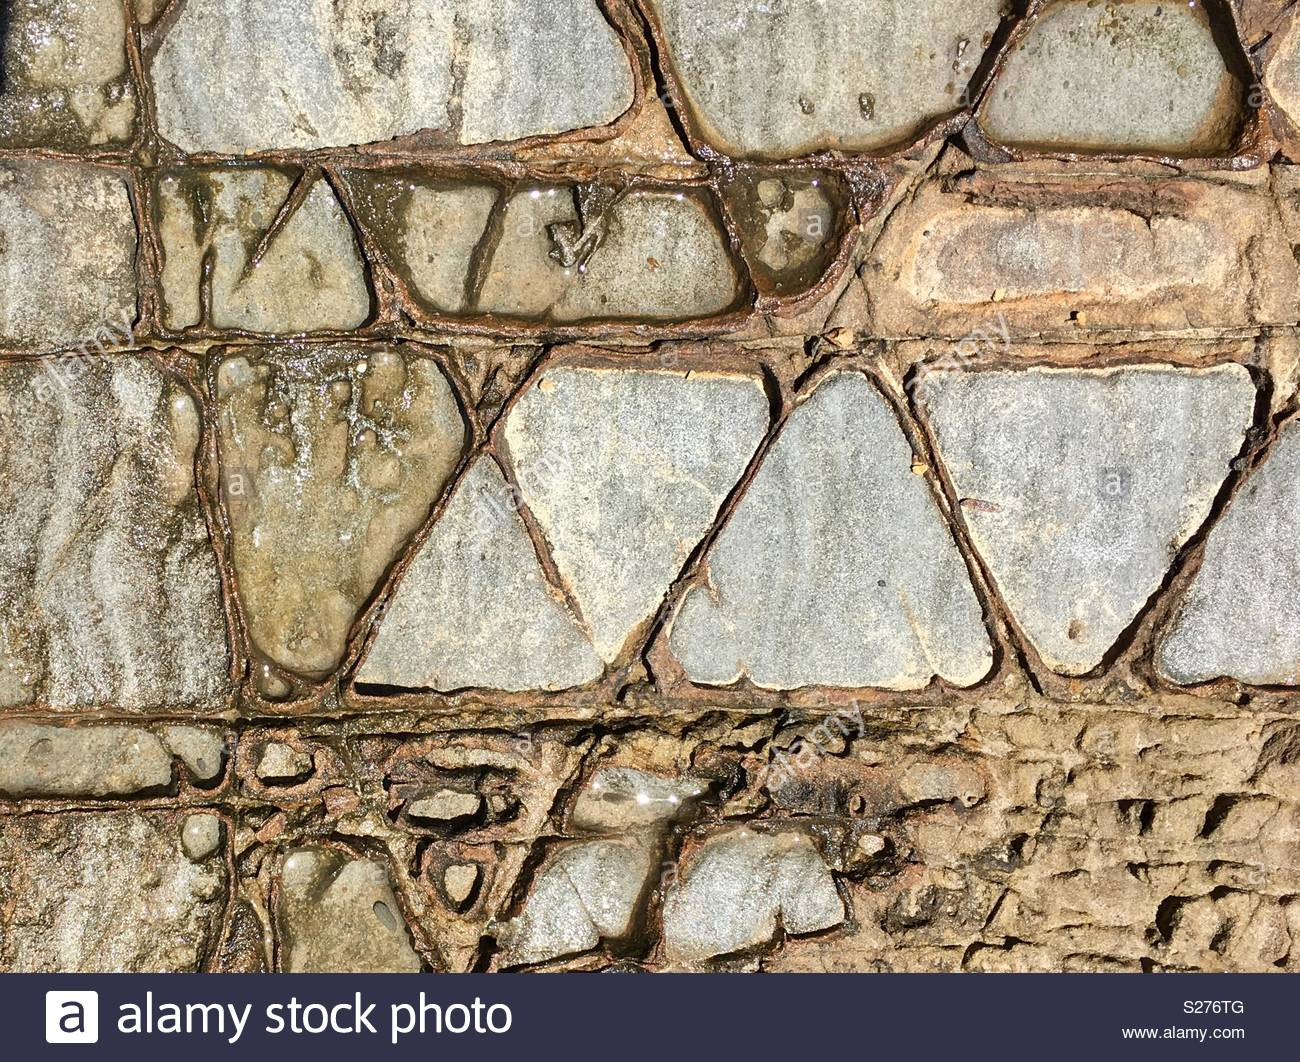 Geometric tidal rocks weathered by the sea - Stock Image